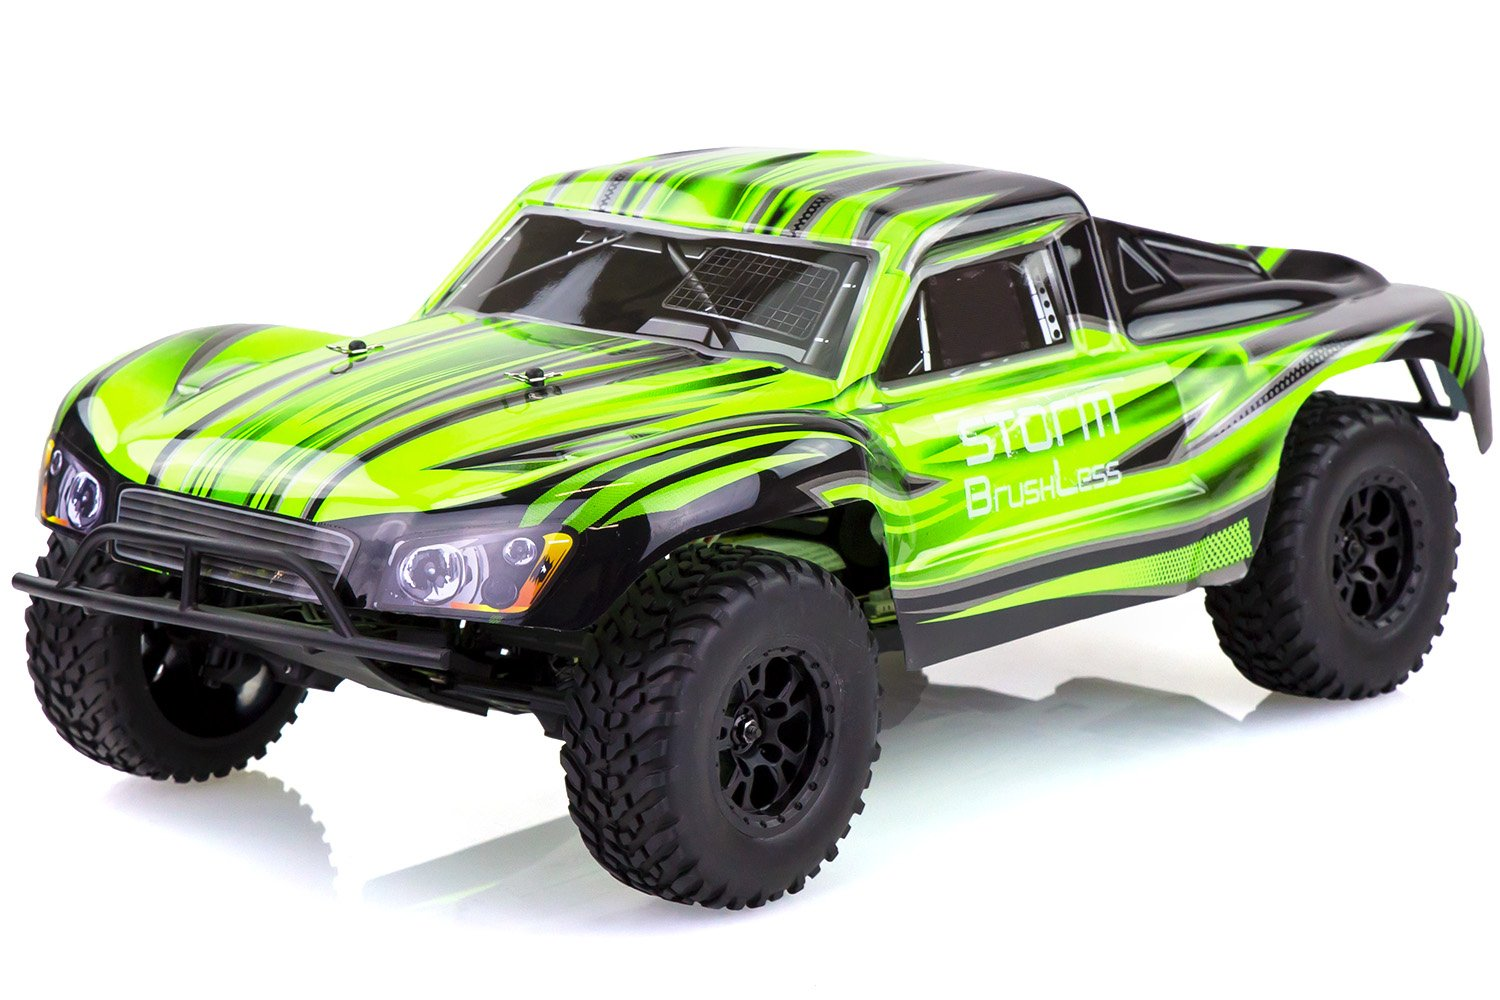 94607PRO | HSP 1/10 Storm BL 2WD Electric Brushless Off Road